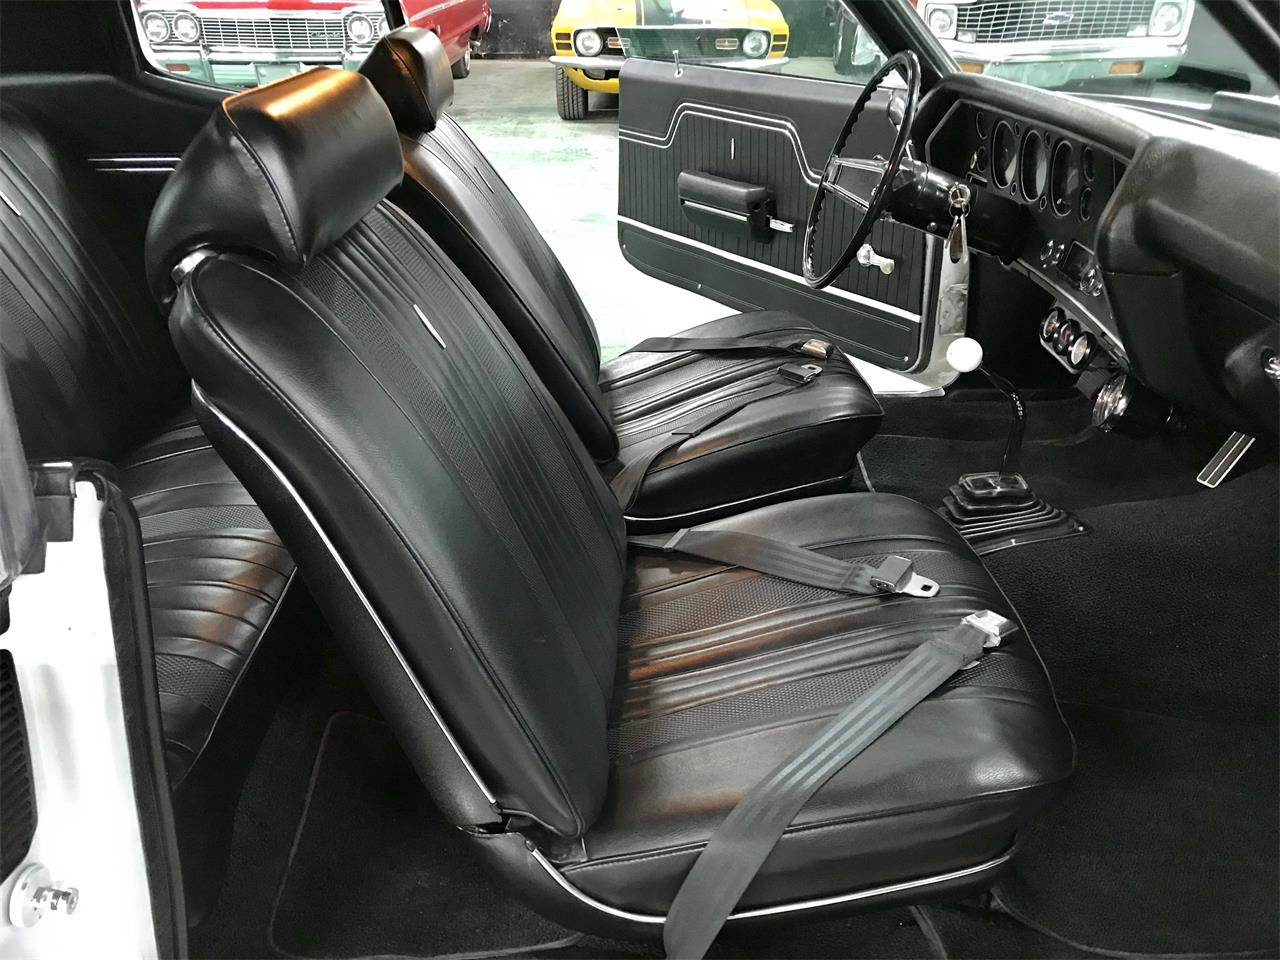 Large Picture of Classic 1970 Chevrolet Chevelle - $29,000.00 Offered by PC Investments - QBT6